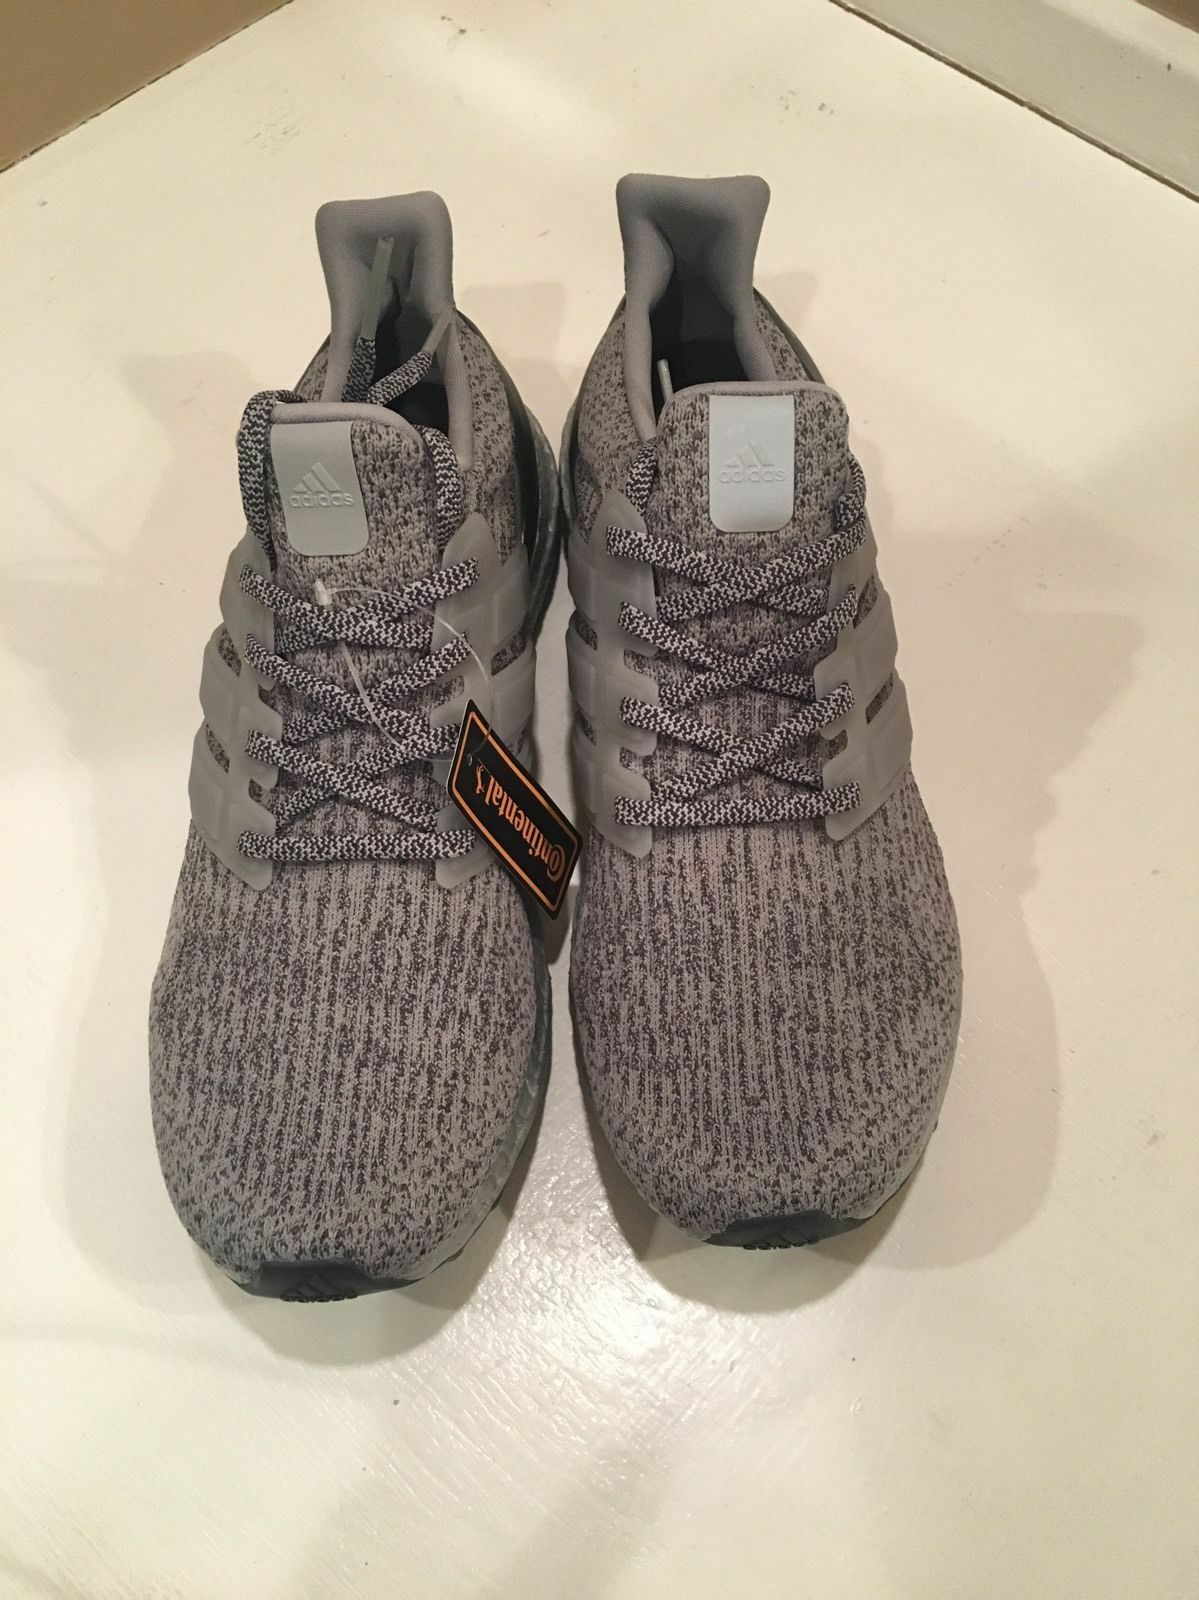 Adidas Adidas Adidas Ultra Boost 3.0 Silver Pack BA8143 Superbowl Metallic Authentic DS 8-11 da7500